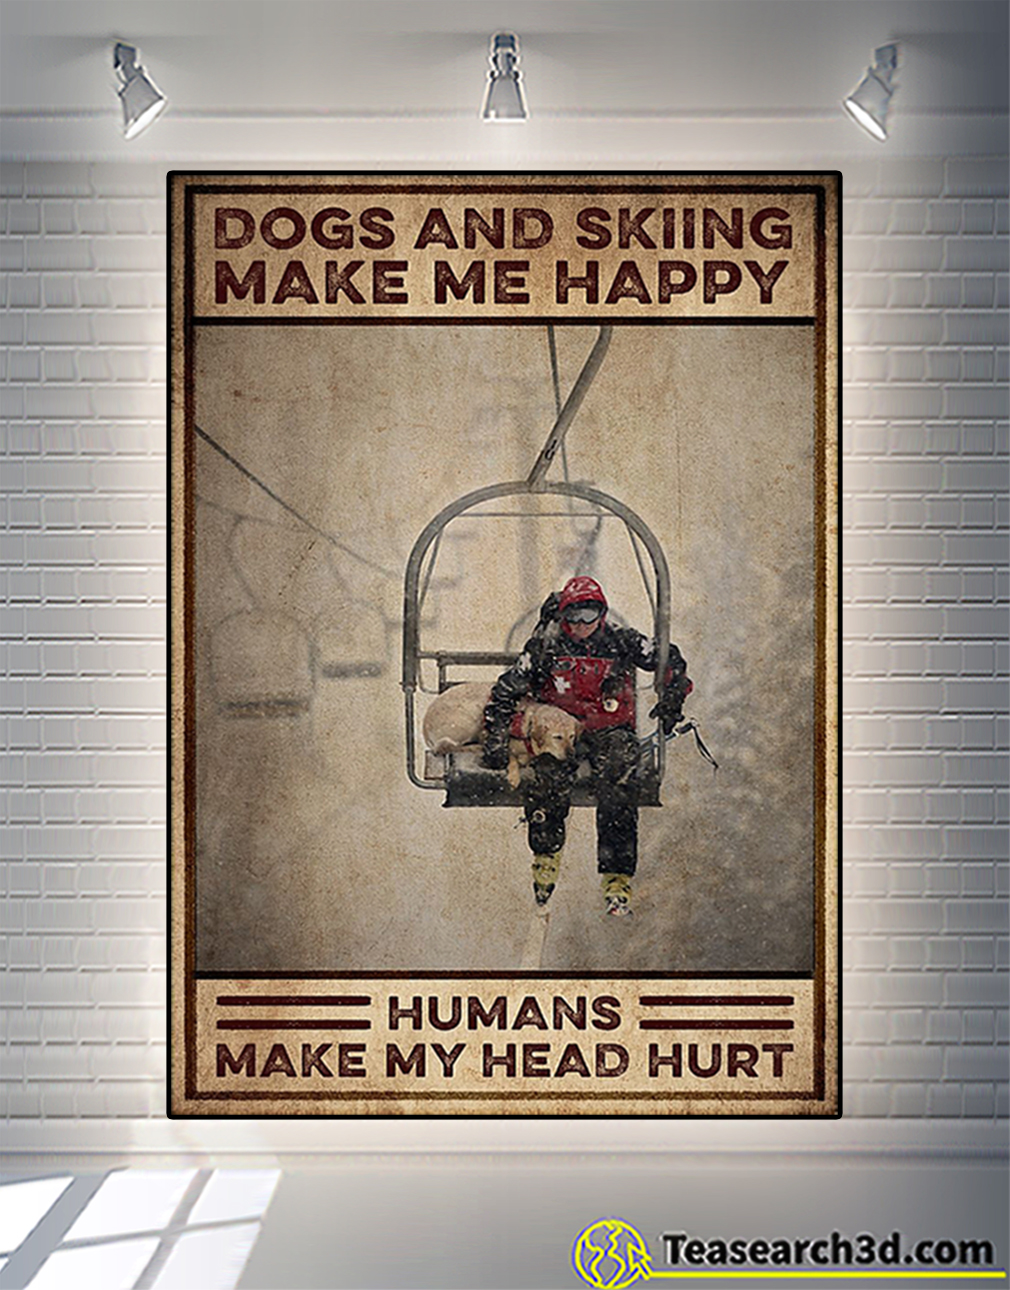 Dogs and skiing make me happy humans make my head hurt poster